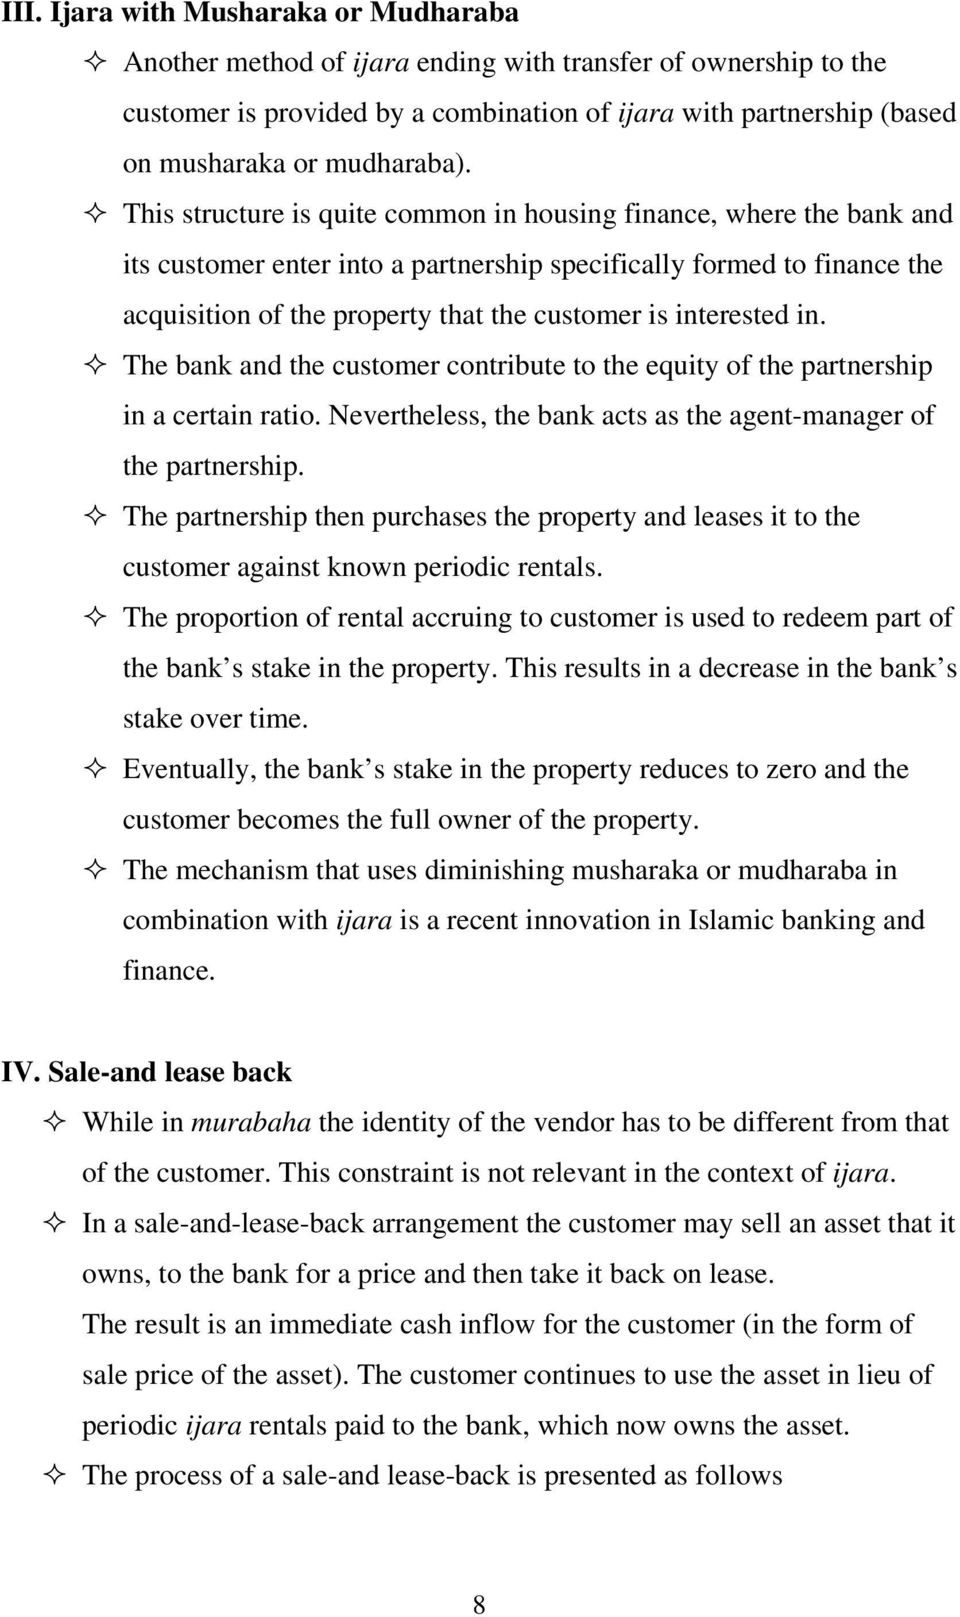 This structure is quite common in housing finance, where the bank and its customer enter into a partnership specifically formed to finance the acquisition of the property that the customer is